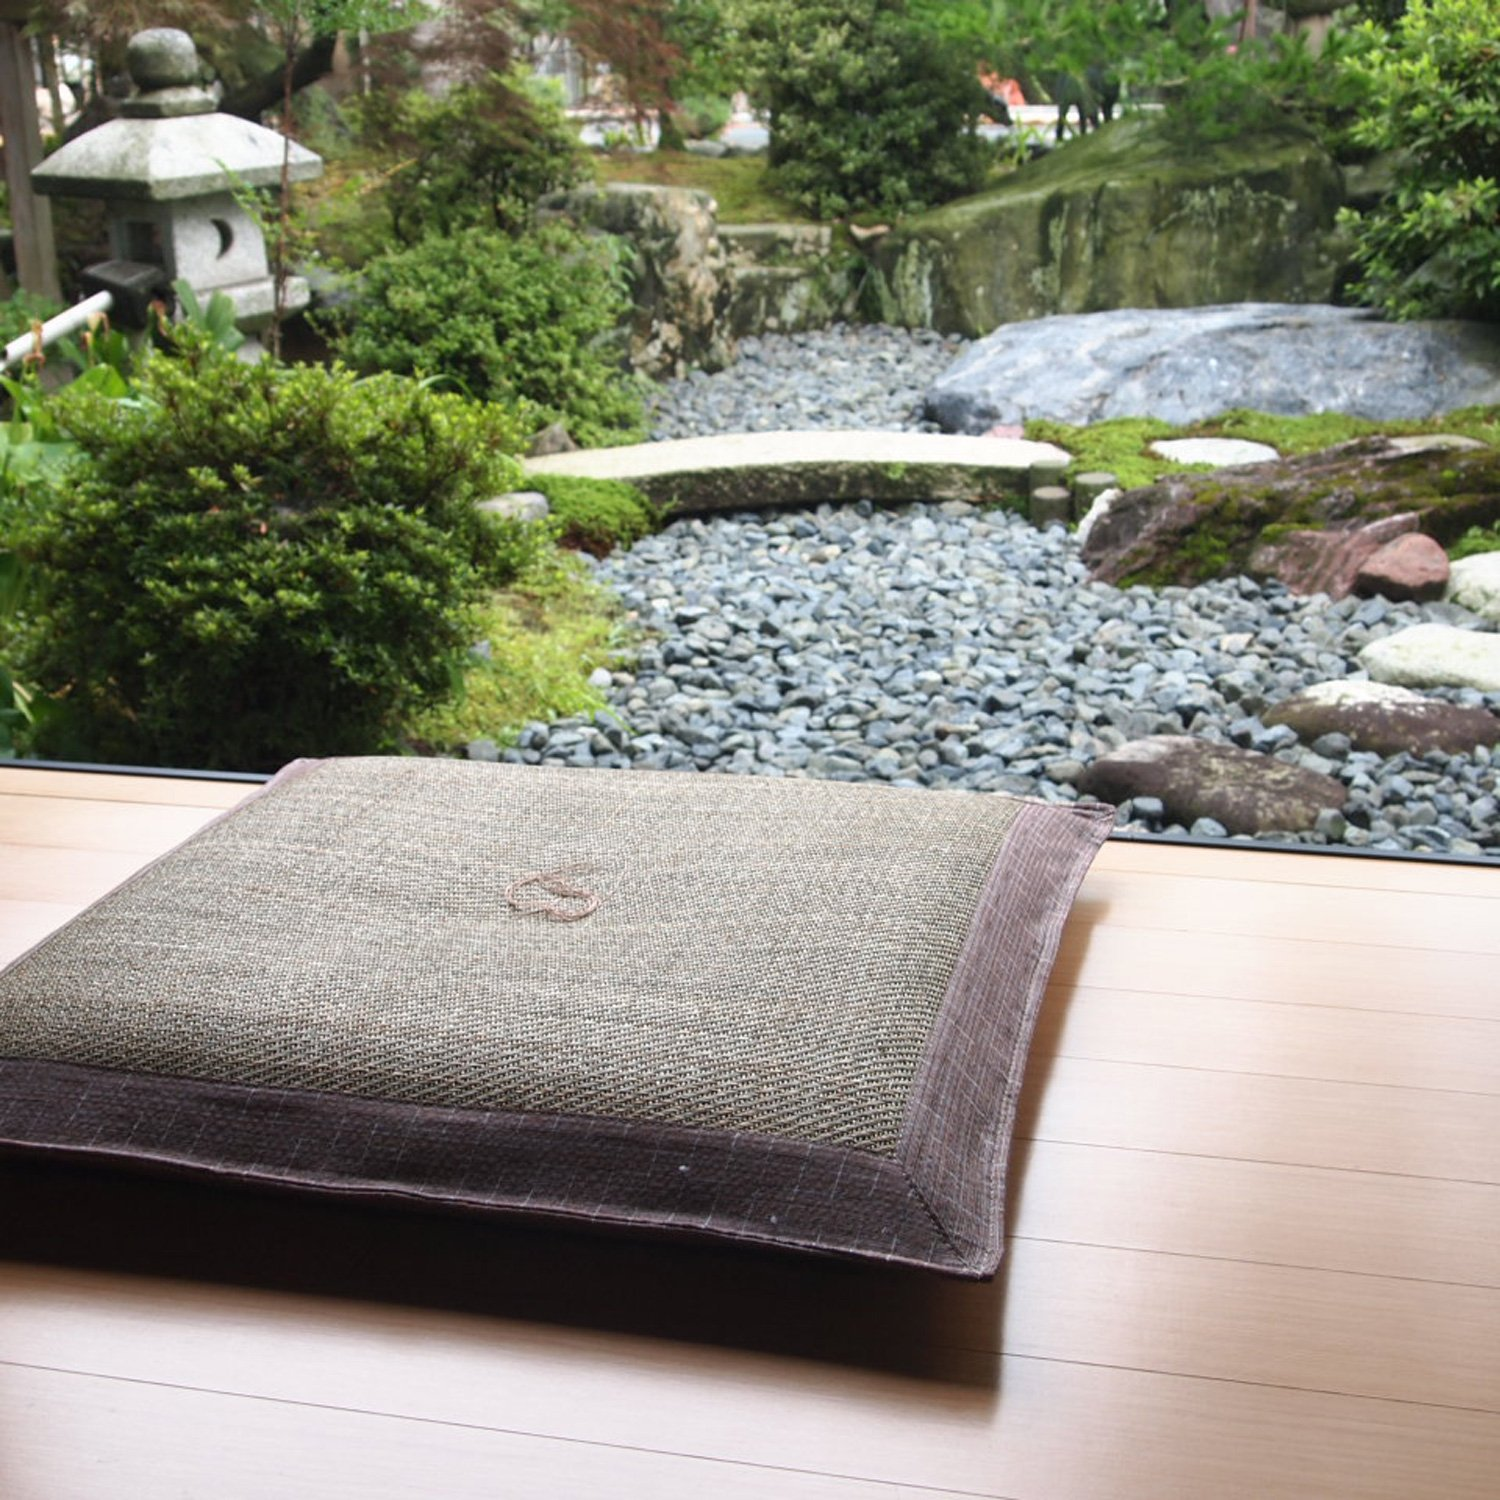 Four Seasons Handmade Japanese Brocade Fabric Zabuton Meditation Cushion(Gras shopper) 26× 26 Inch by Four Seasons